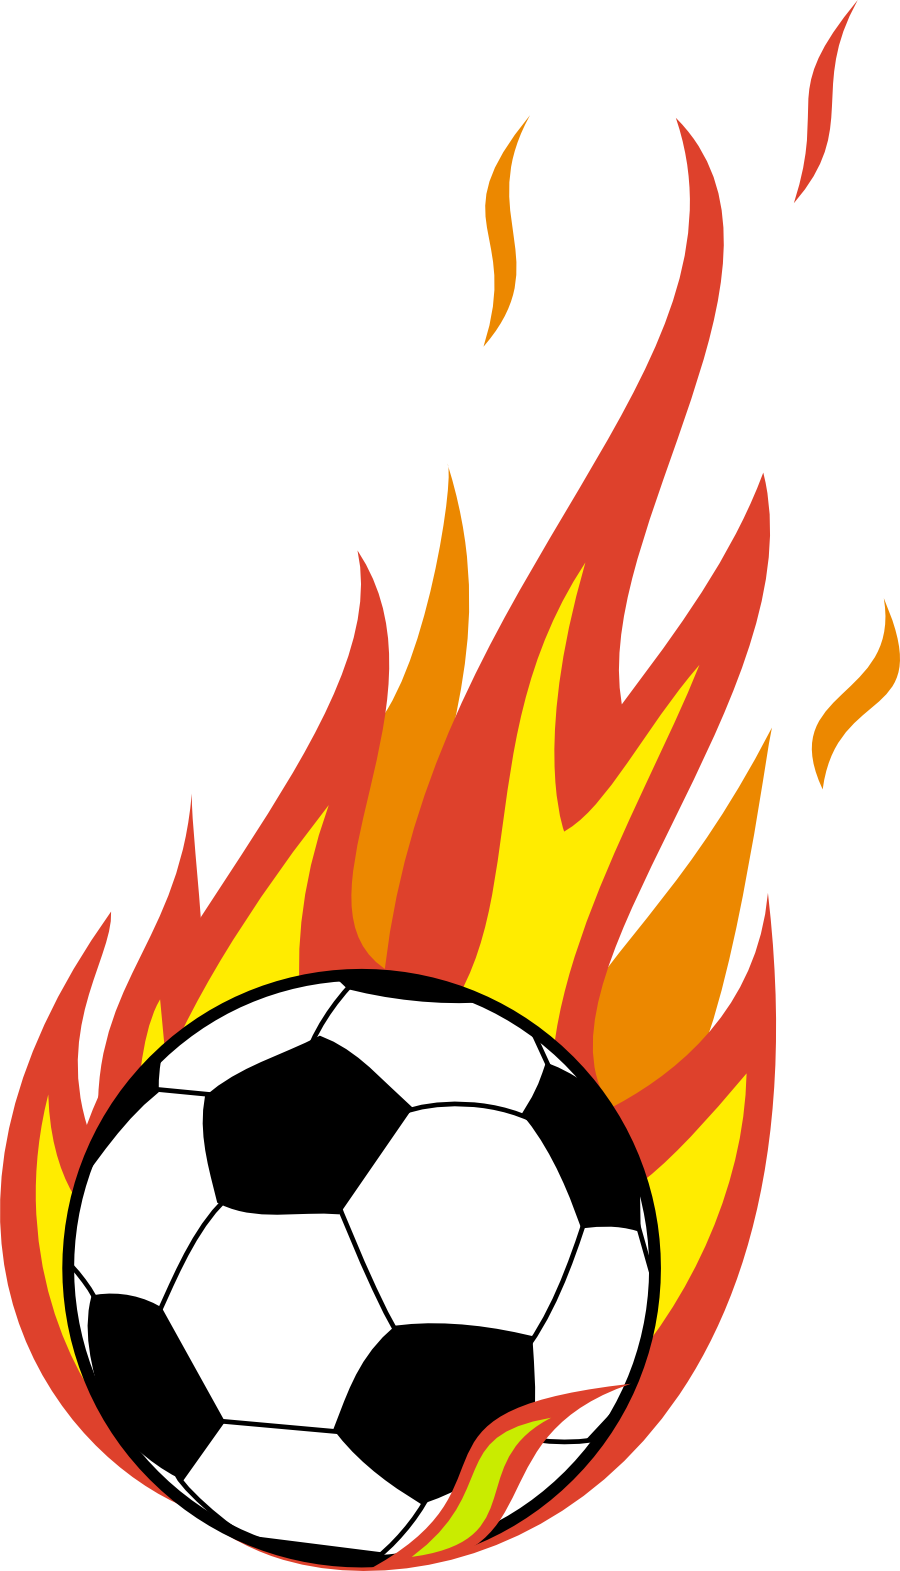 900x1571 Sports Clipart Soccer Ball with Flames Clipart Gallery ~ Free